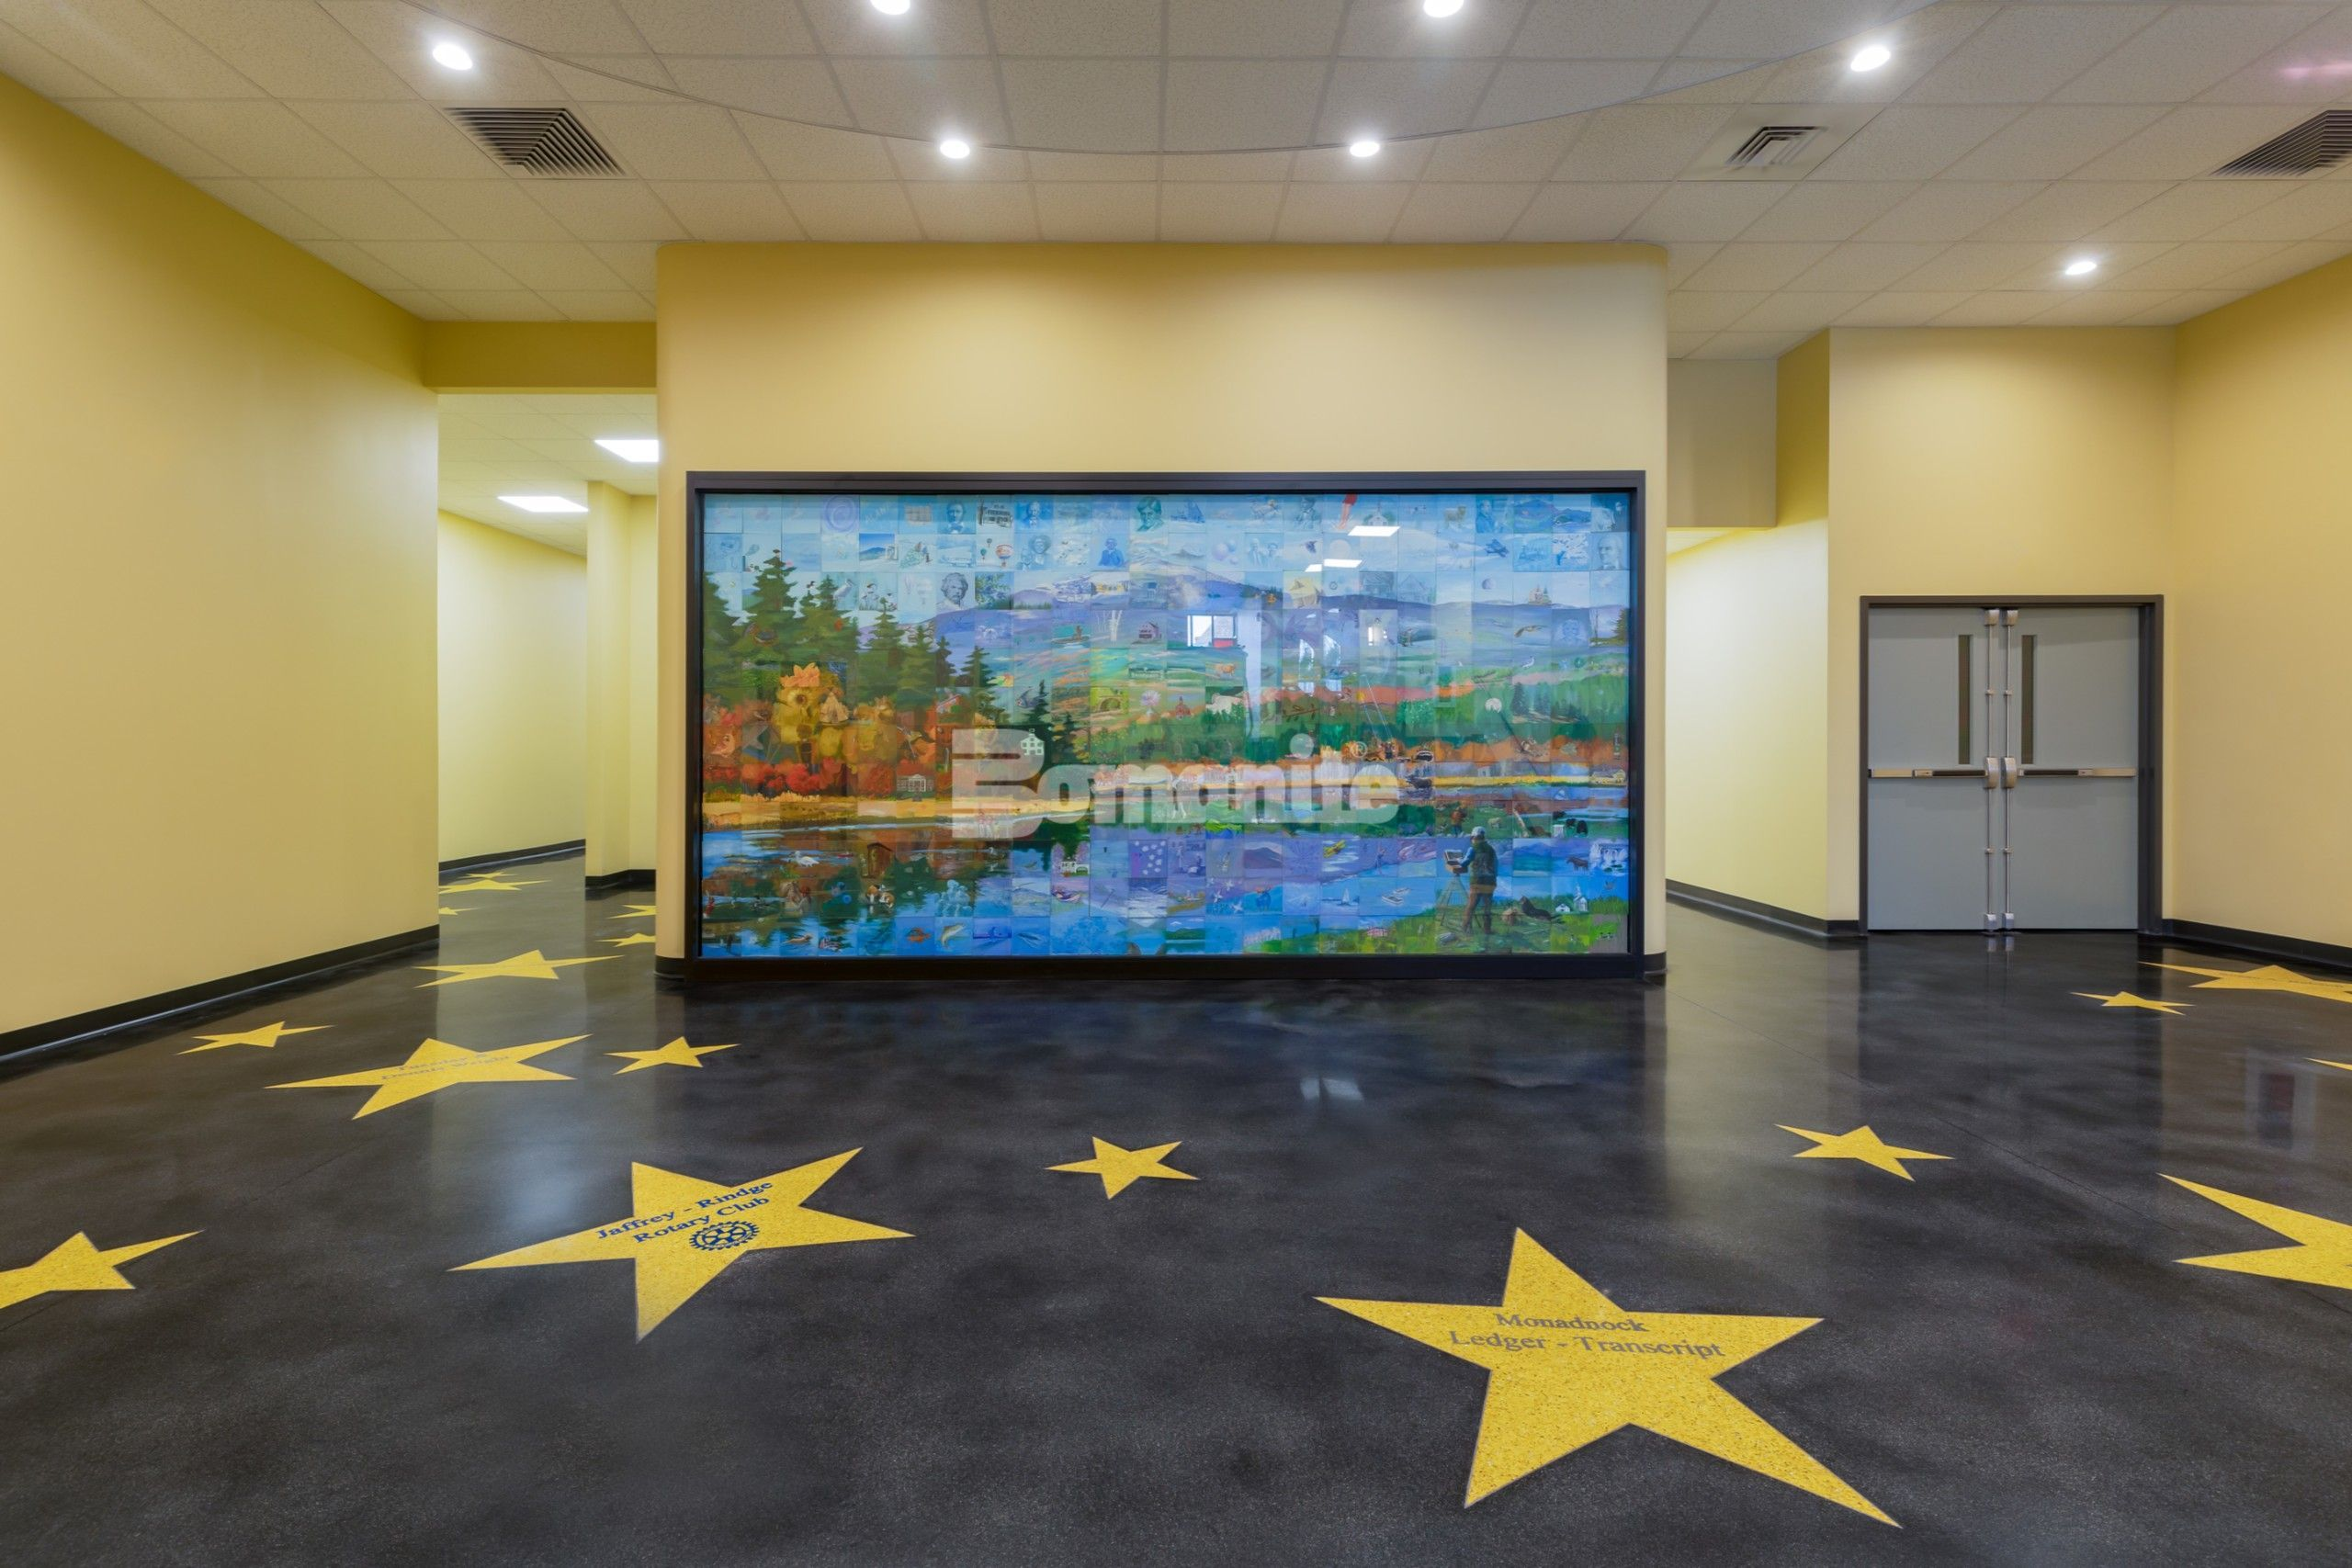 Premier Concrete Construction brought to life the Hollywood walk of fame in the main lobby of the Jaffrey Park Theatre in Jaffrey, NH, with a sleek dark Bomanite Renaissance Polished Concrete Floor as the background to the Golden Stars engraved with donor names in brilliant blue created with the Bomanite Modena TG system.